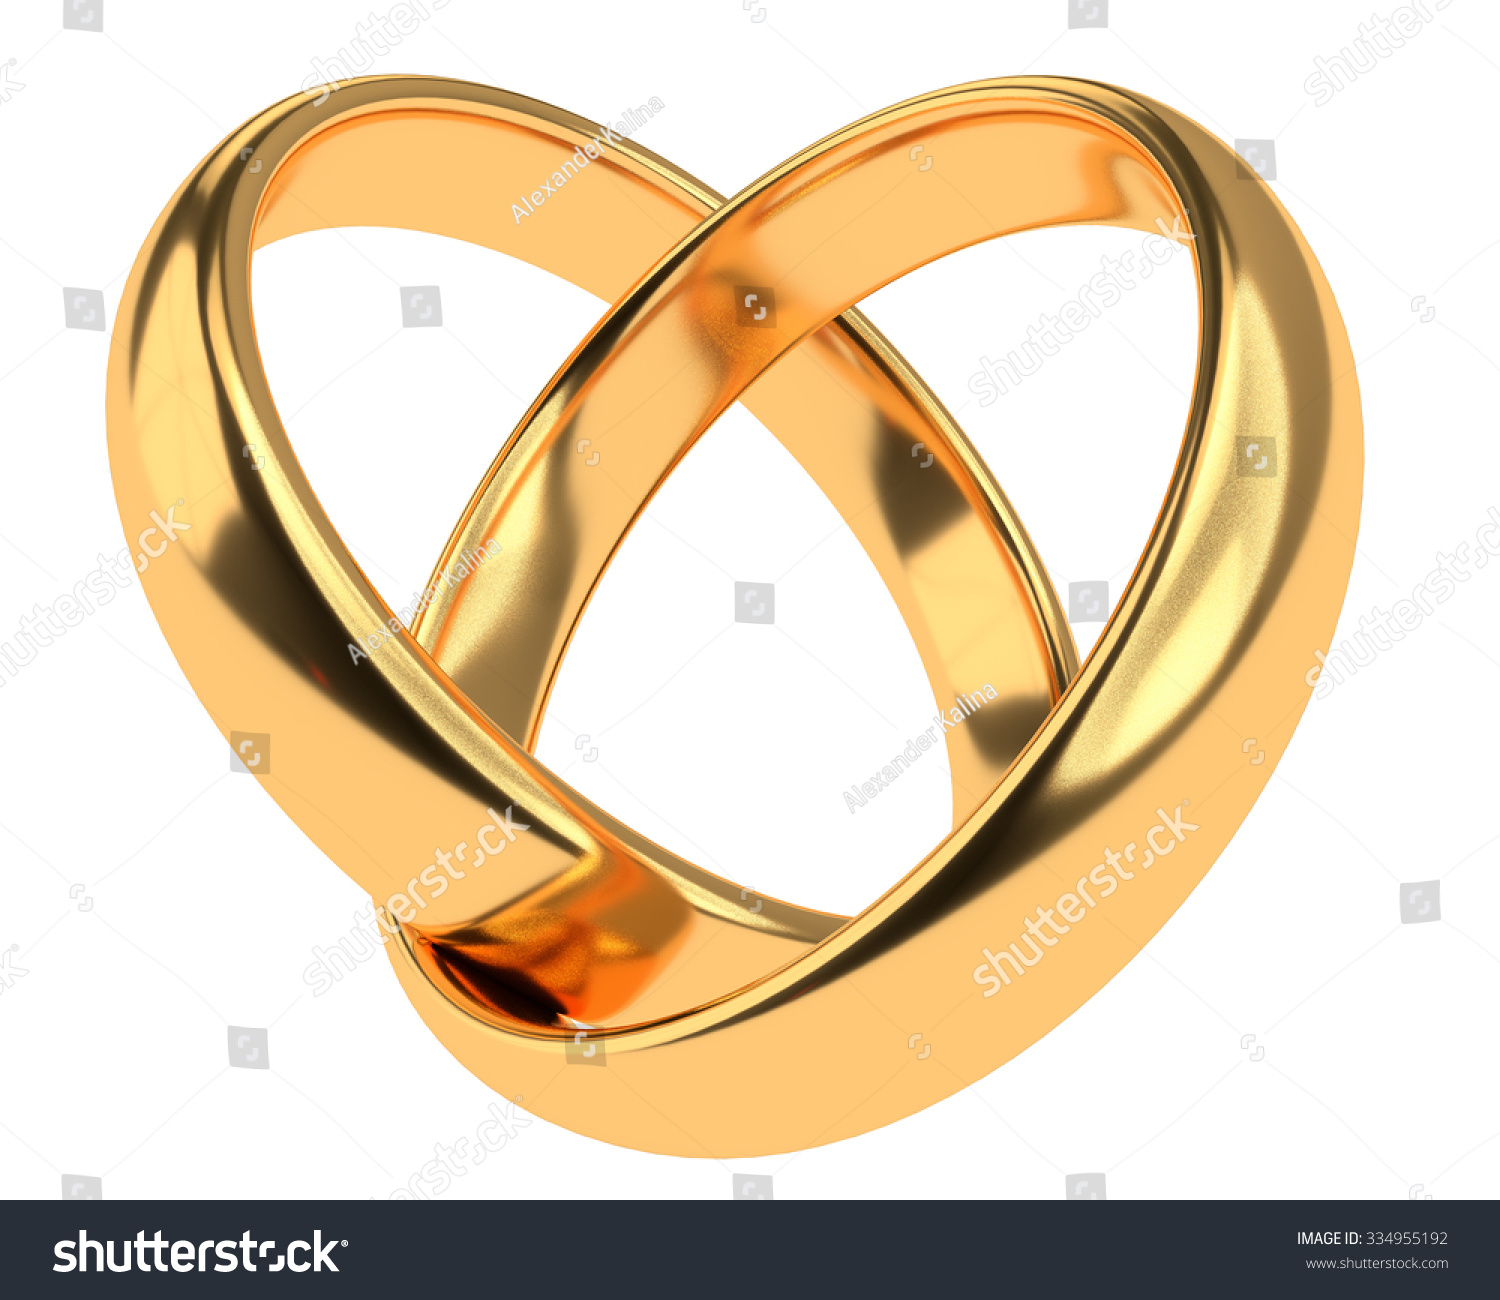 Heart With Two Connected Gold Wedding Rings Isolated On